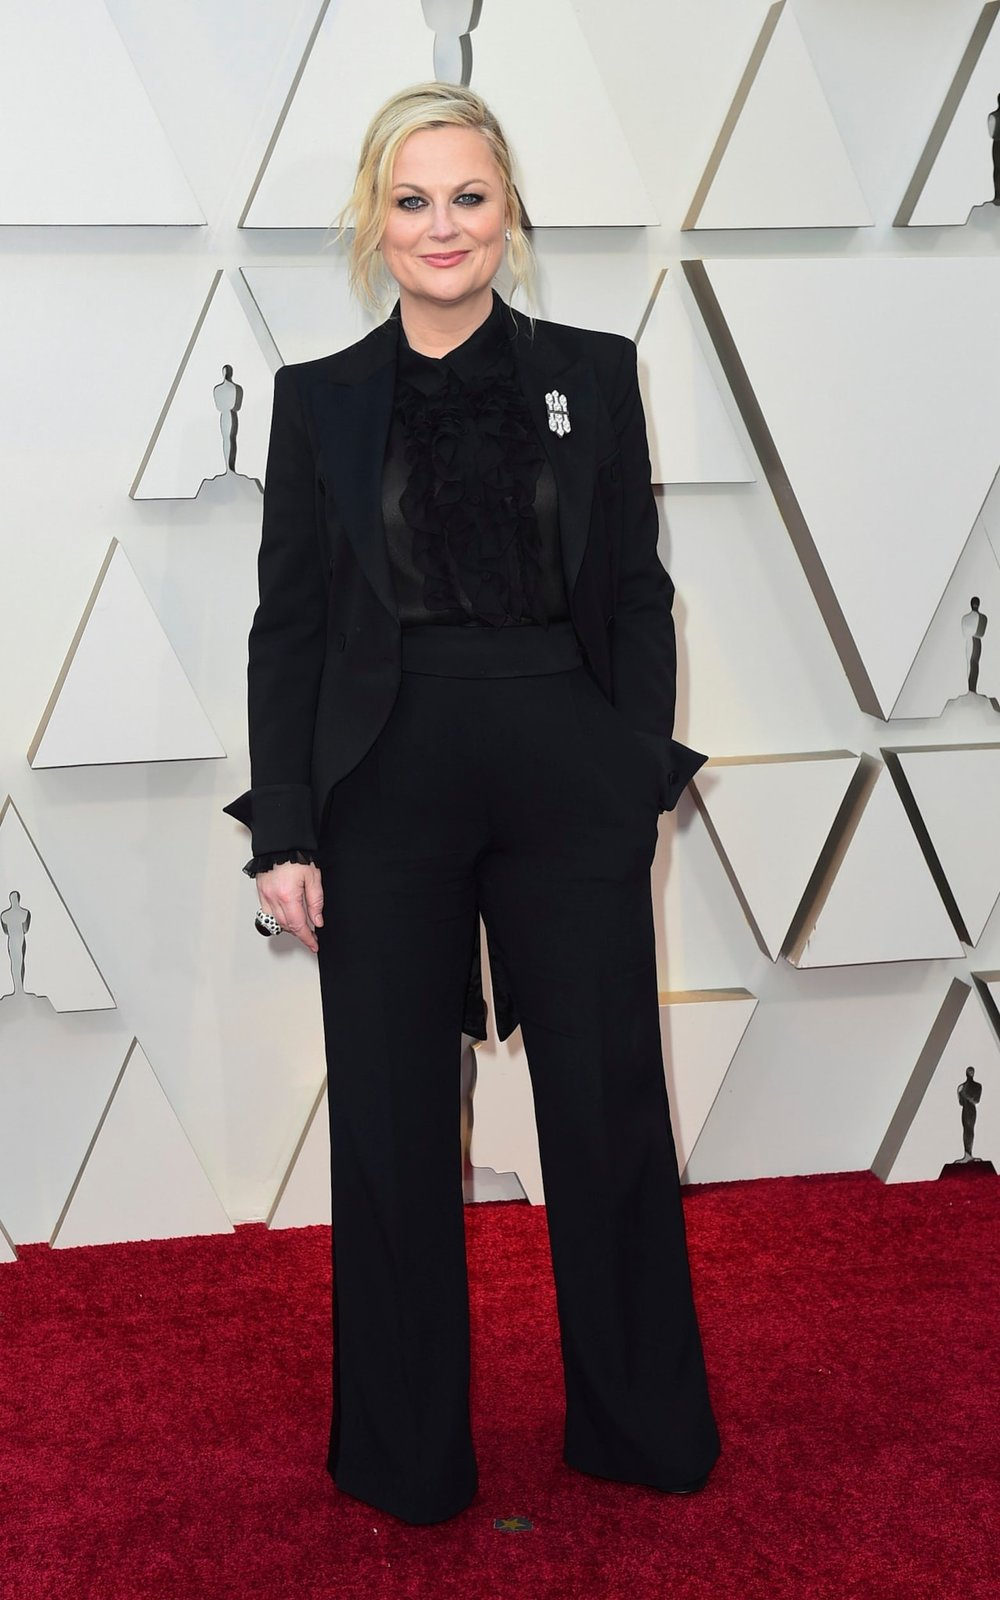 Amy Poehler on the carpet of the 2019 Oscars